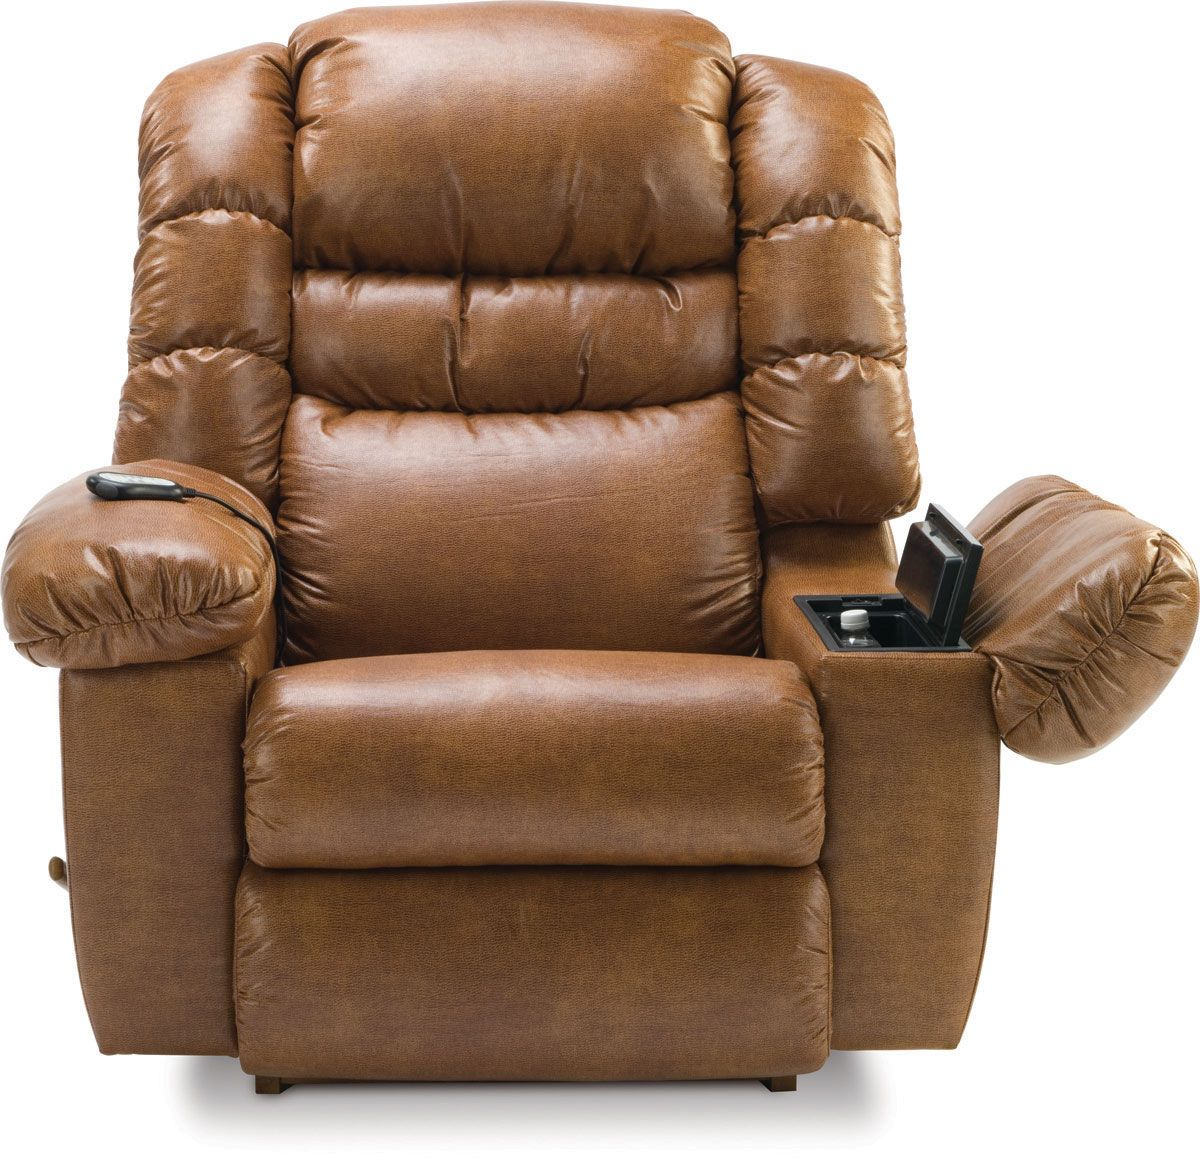 Effigy of The Most Comfortable Recliners That Are Perfect for Relaxing  sc 1 st  Pinterest & Effigy of The Most Comfortable Recliners That Are Perfect for ... islam-shia.org